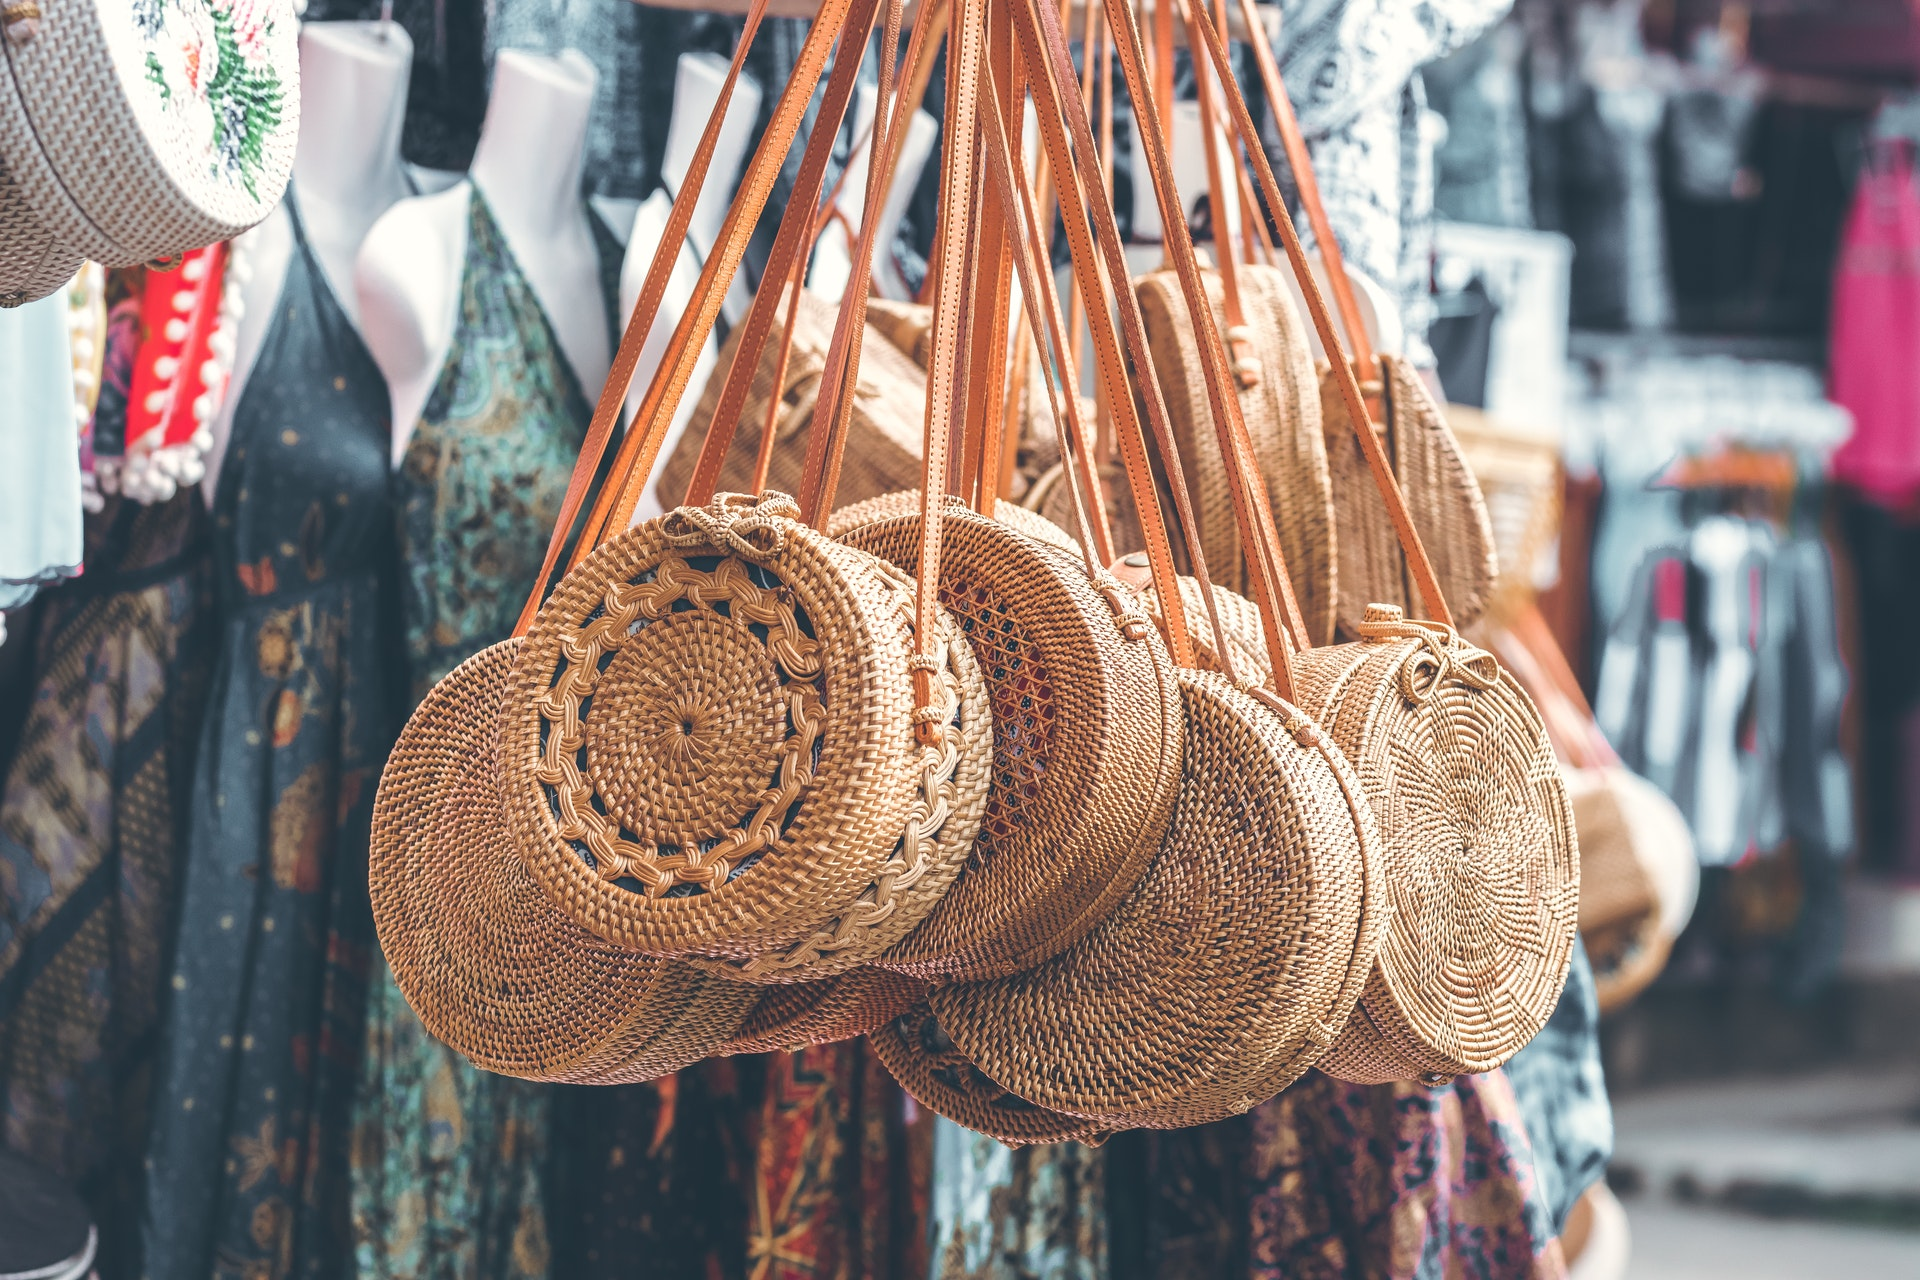 Cleaning rattan bags are essential to keep the wood bags sturdy and beautiful even longer.